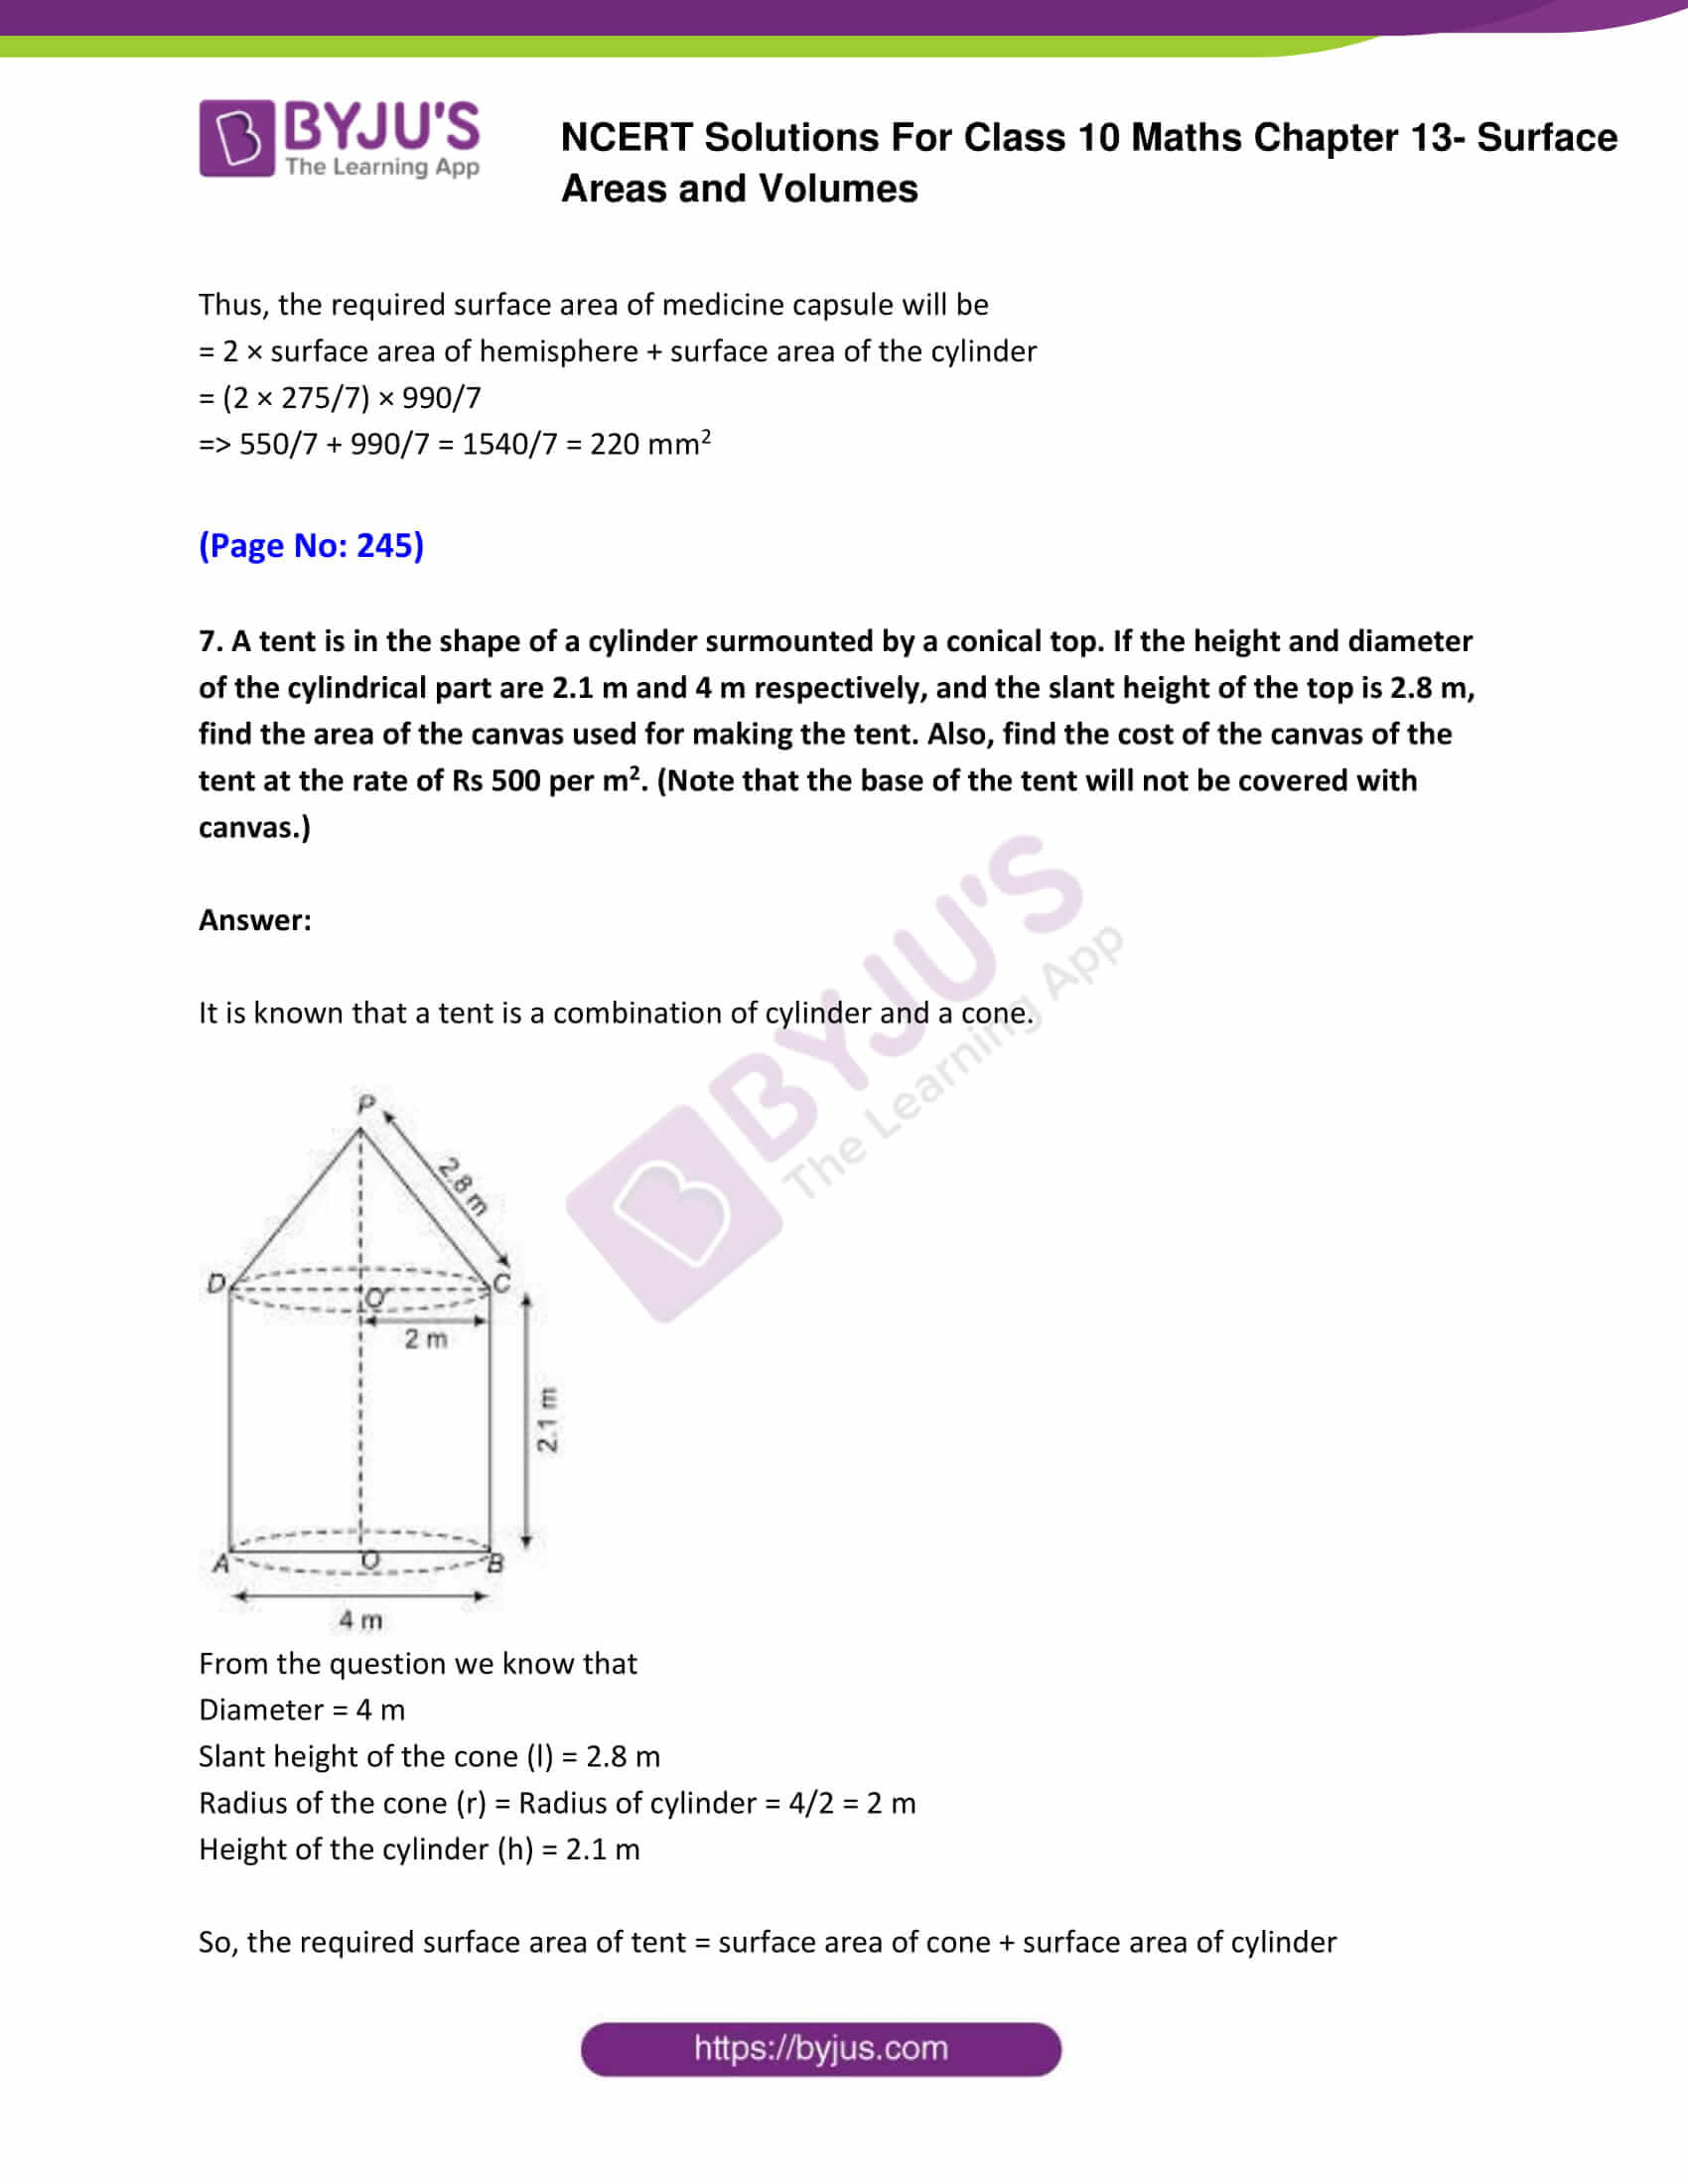 NCERT Solutions Class 10 Maths Chapter 13 Surface Areas and Volumes Part 06